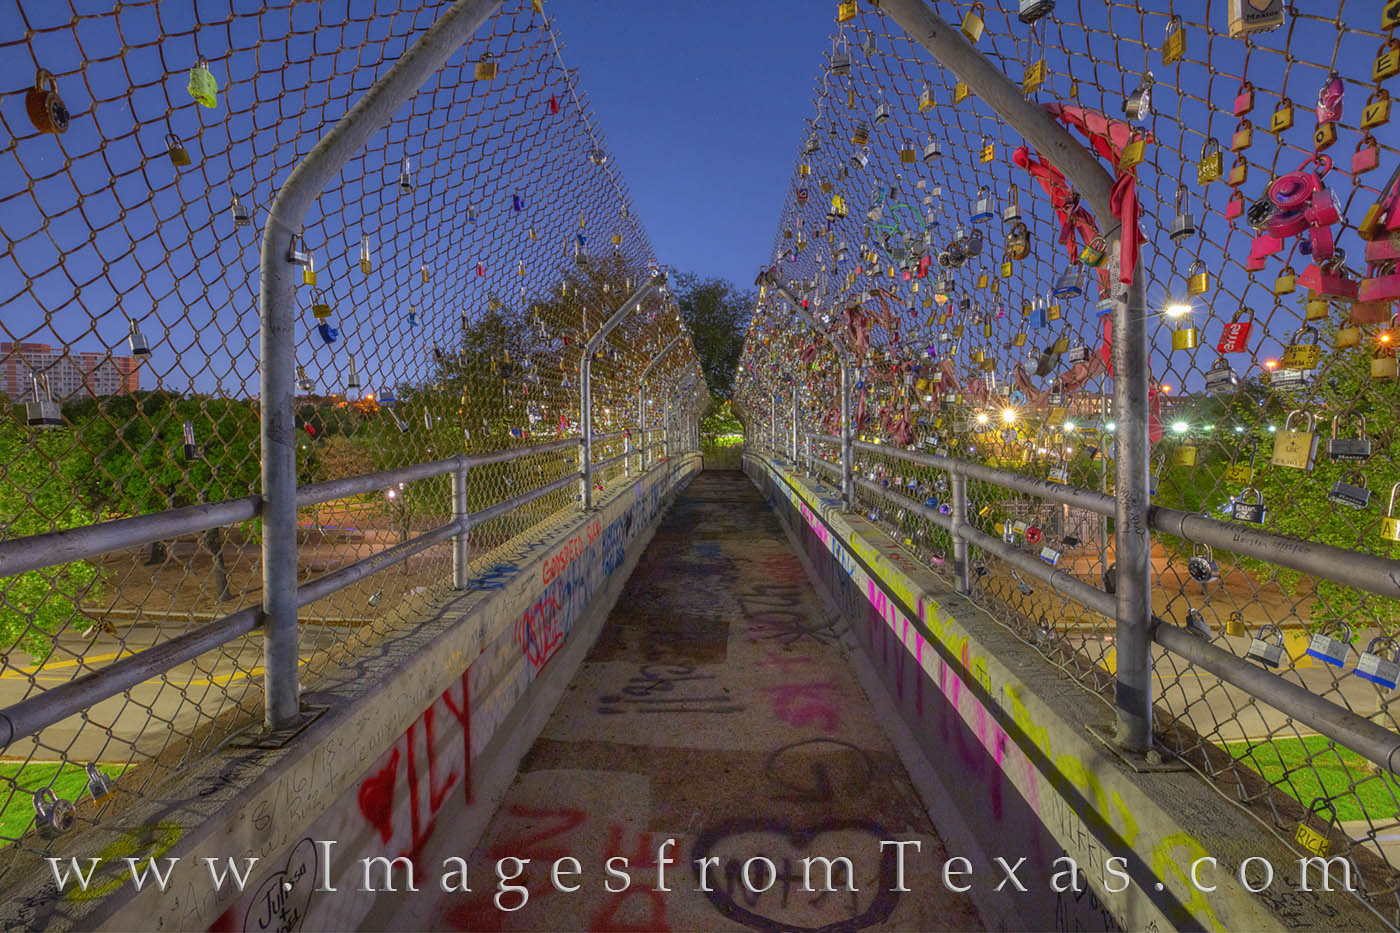 The famous Love Lock Bridge passes over Allen Parkway near downtown Houston, Texas. The locks are placed their by lovers declaring...